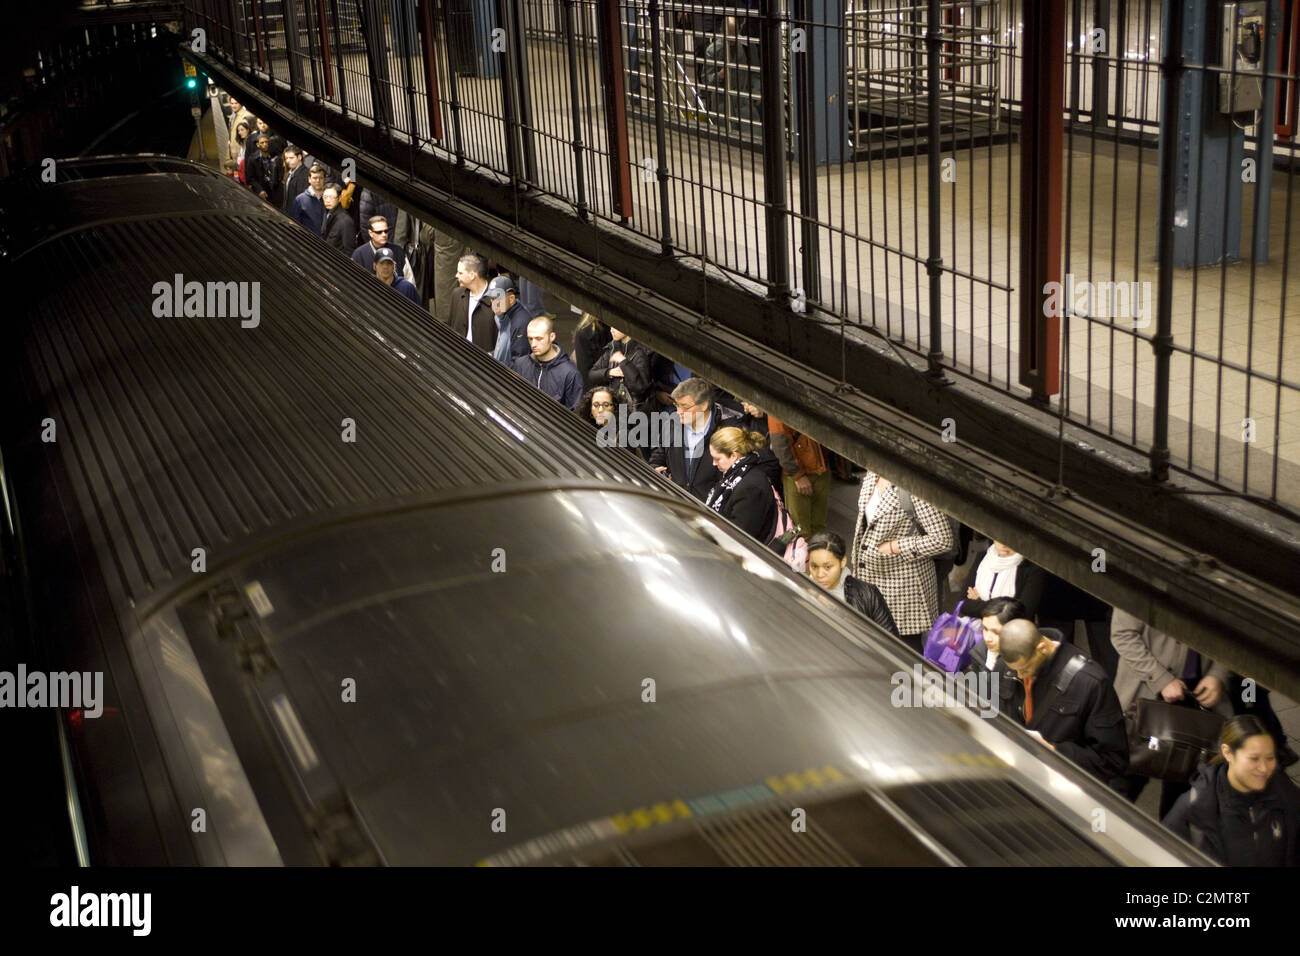 Subway station platform at 14th Street in New York City. - Stock Image